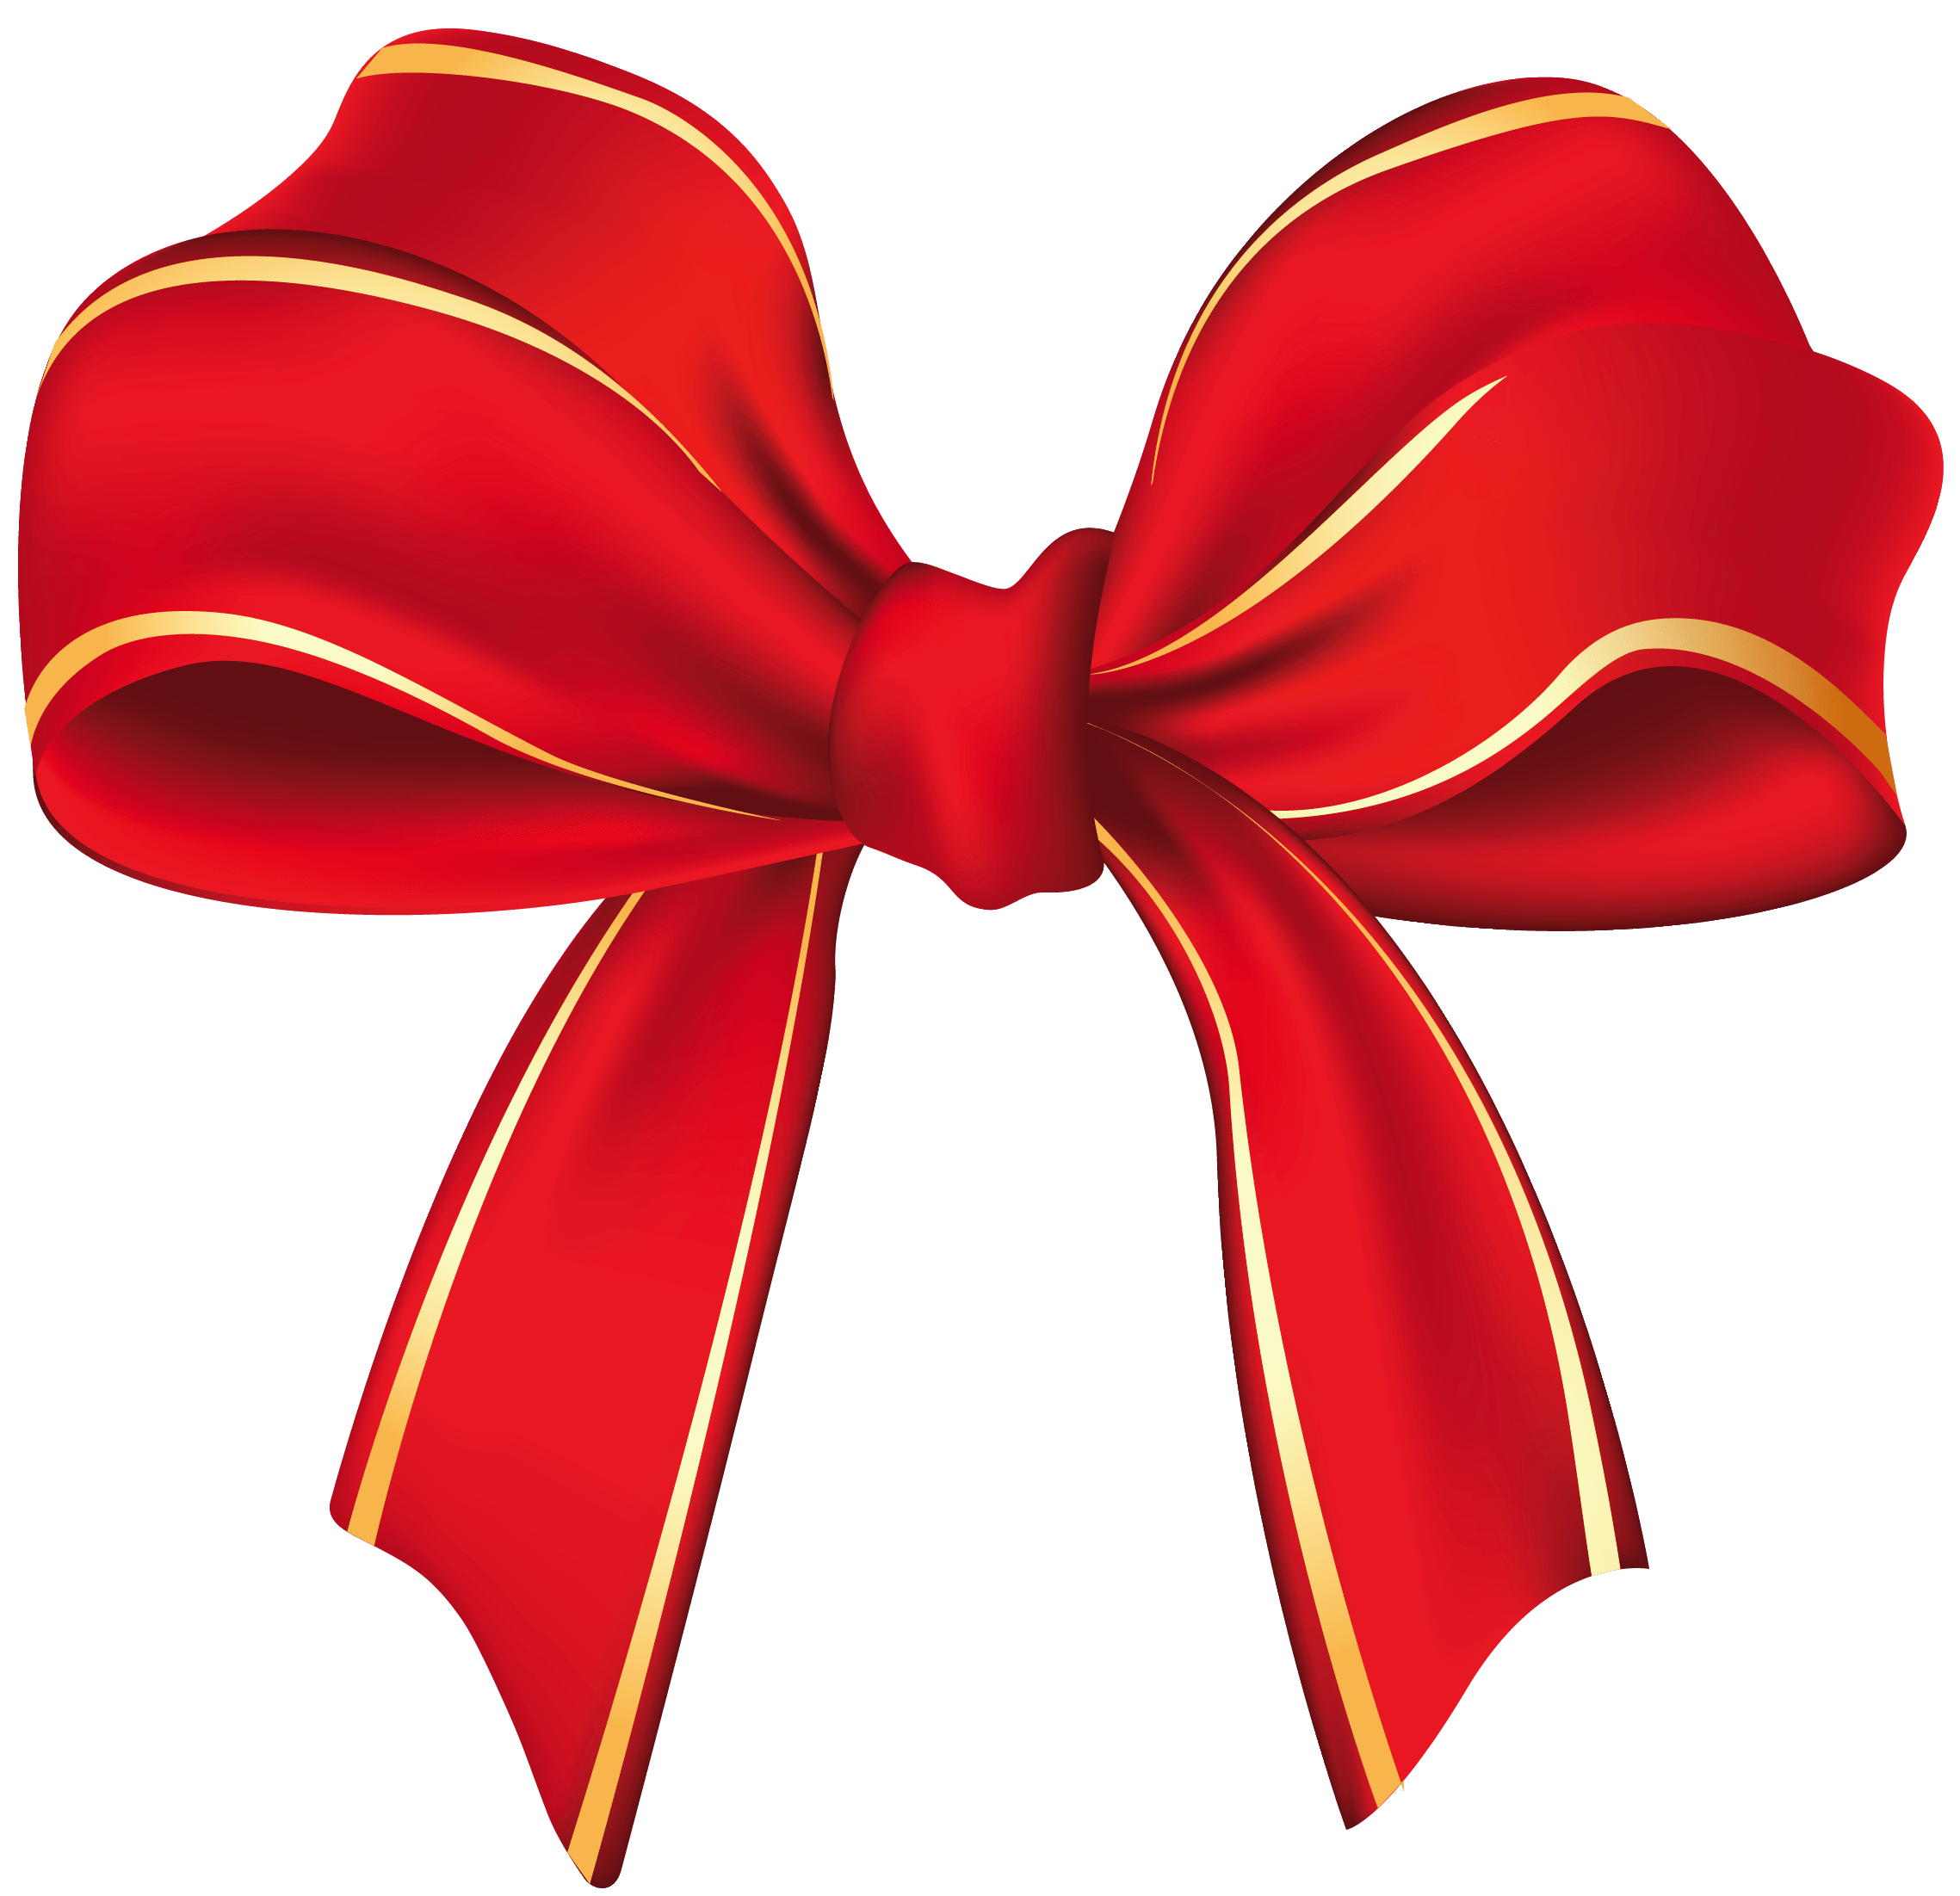 Christmas arrow clipart png Christmas Bow Image – Merry Christmas And Happy New Year 2018 png